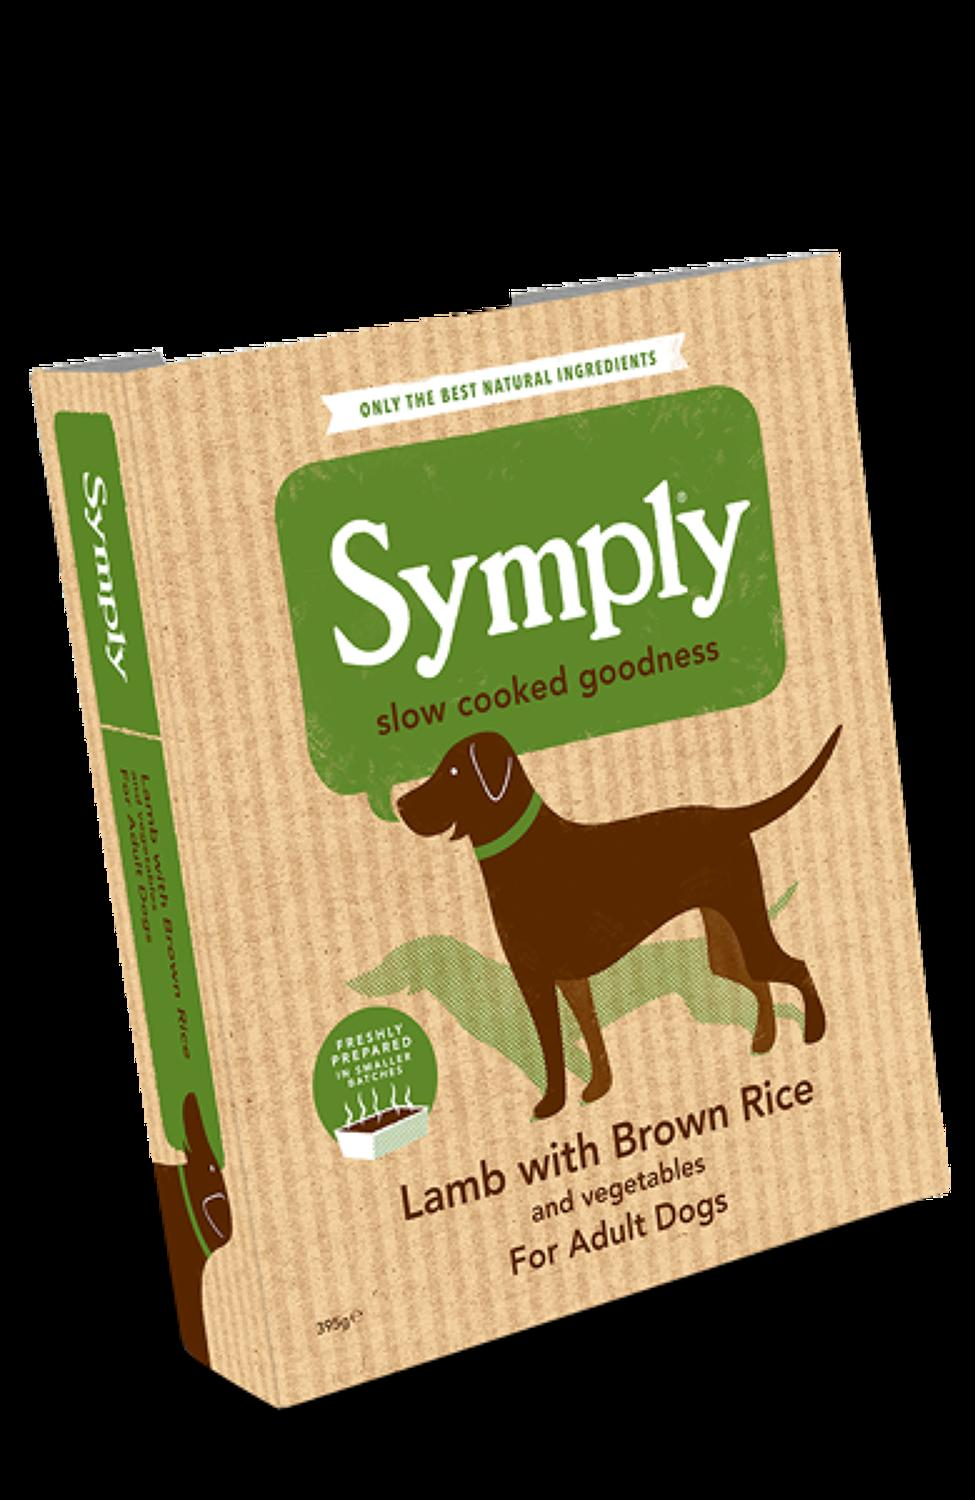 Symply Lamb & Rice For Adult Dogs 395g